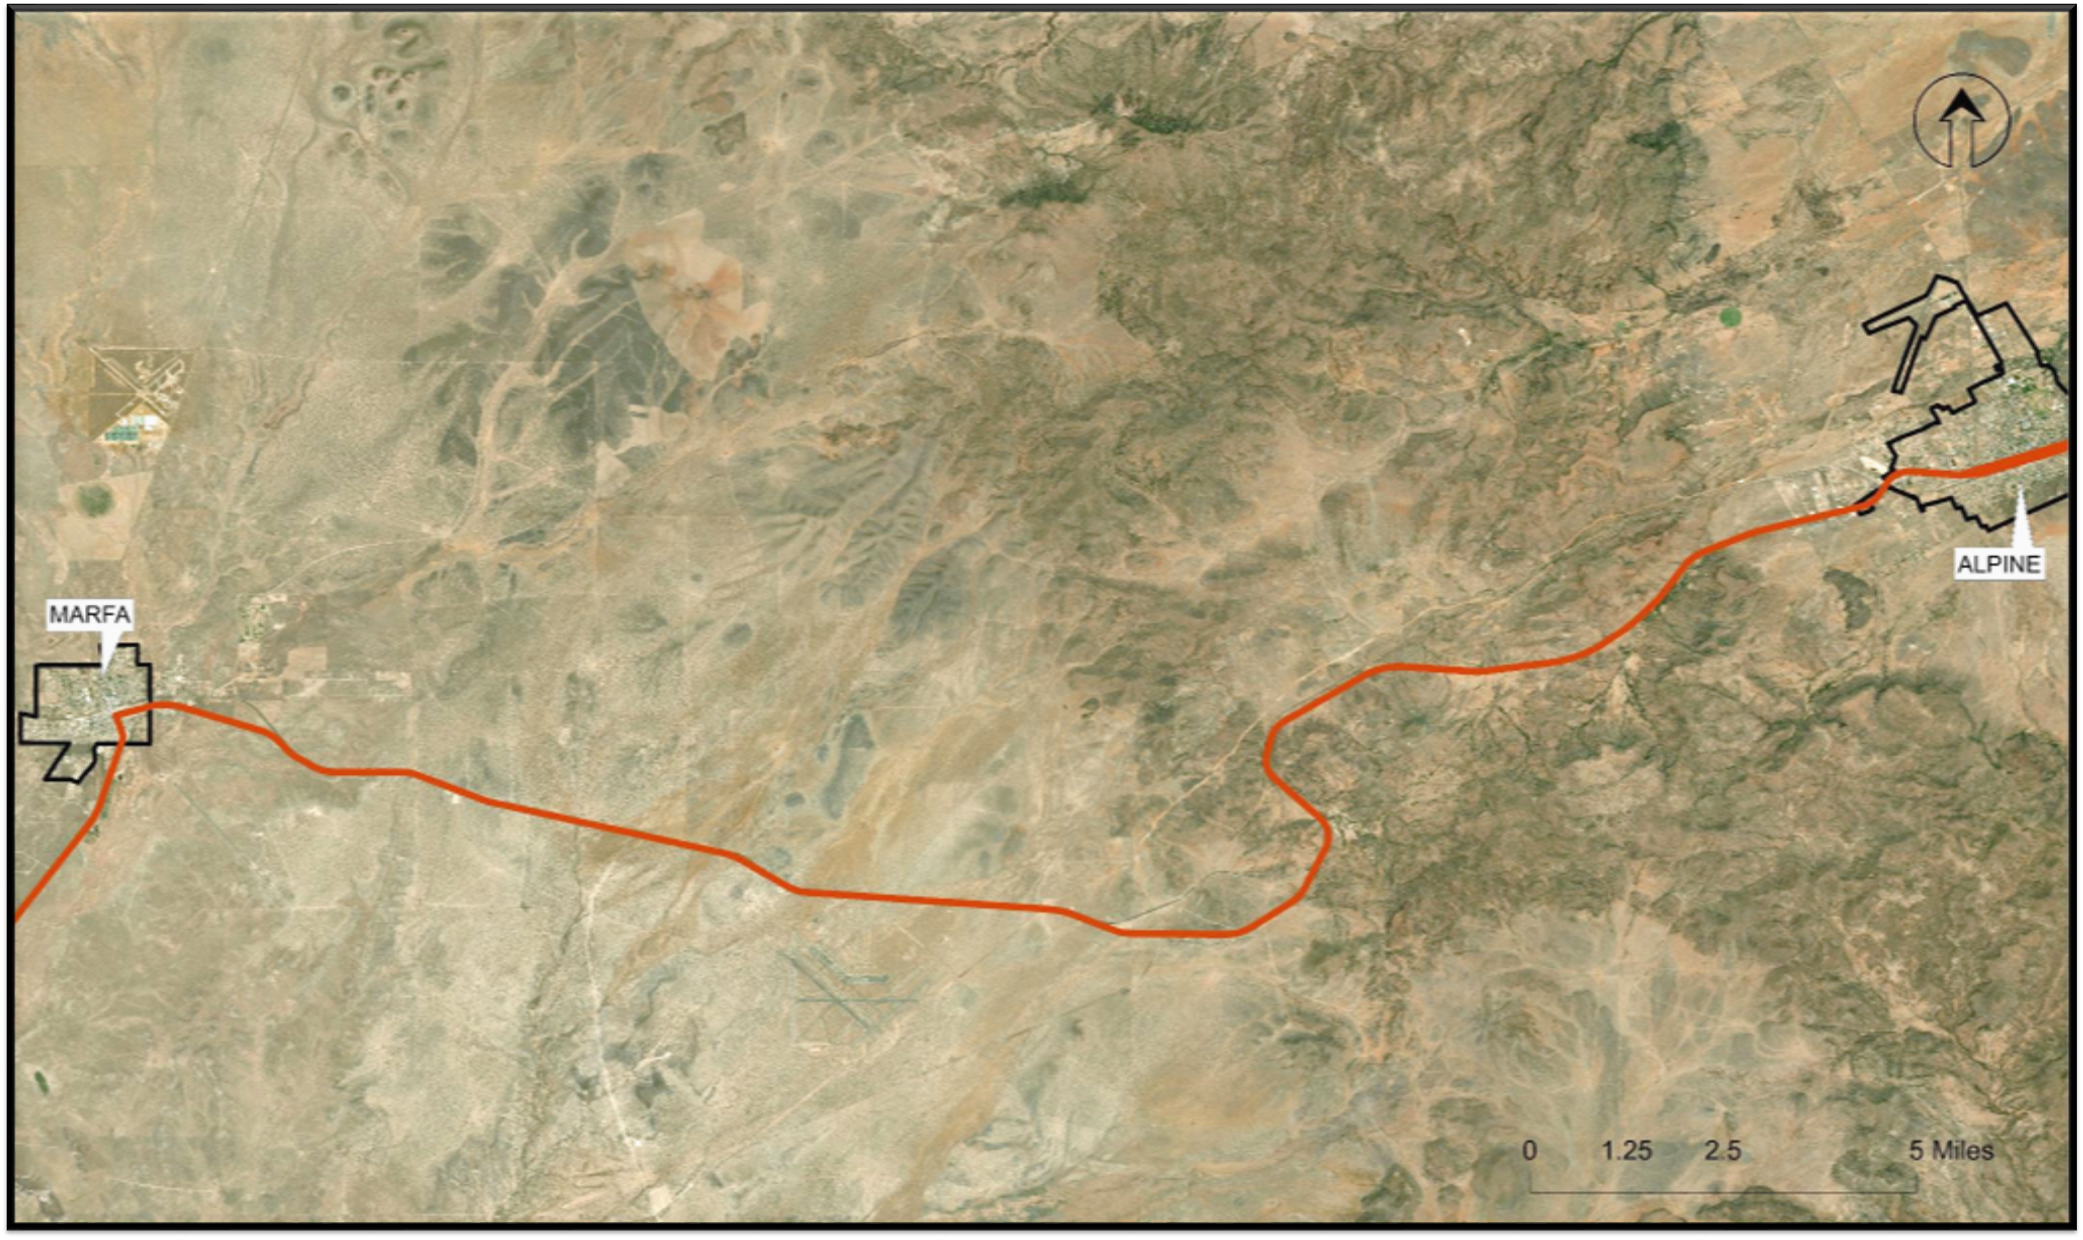 Top 3 Improvement Options for Area D (US 67 from Marfa to Alpine)